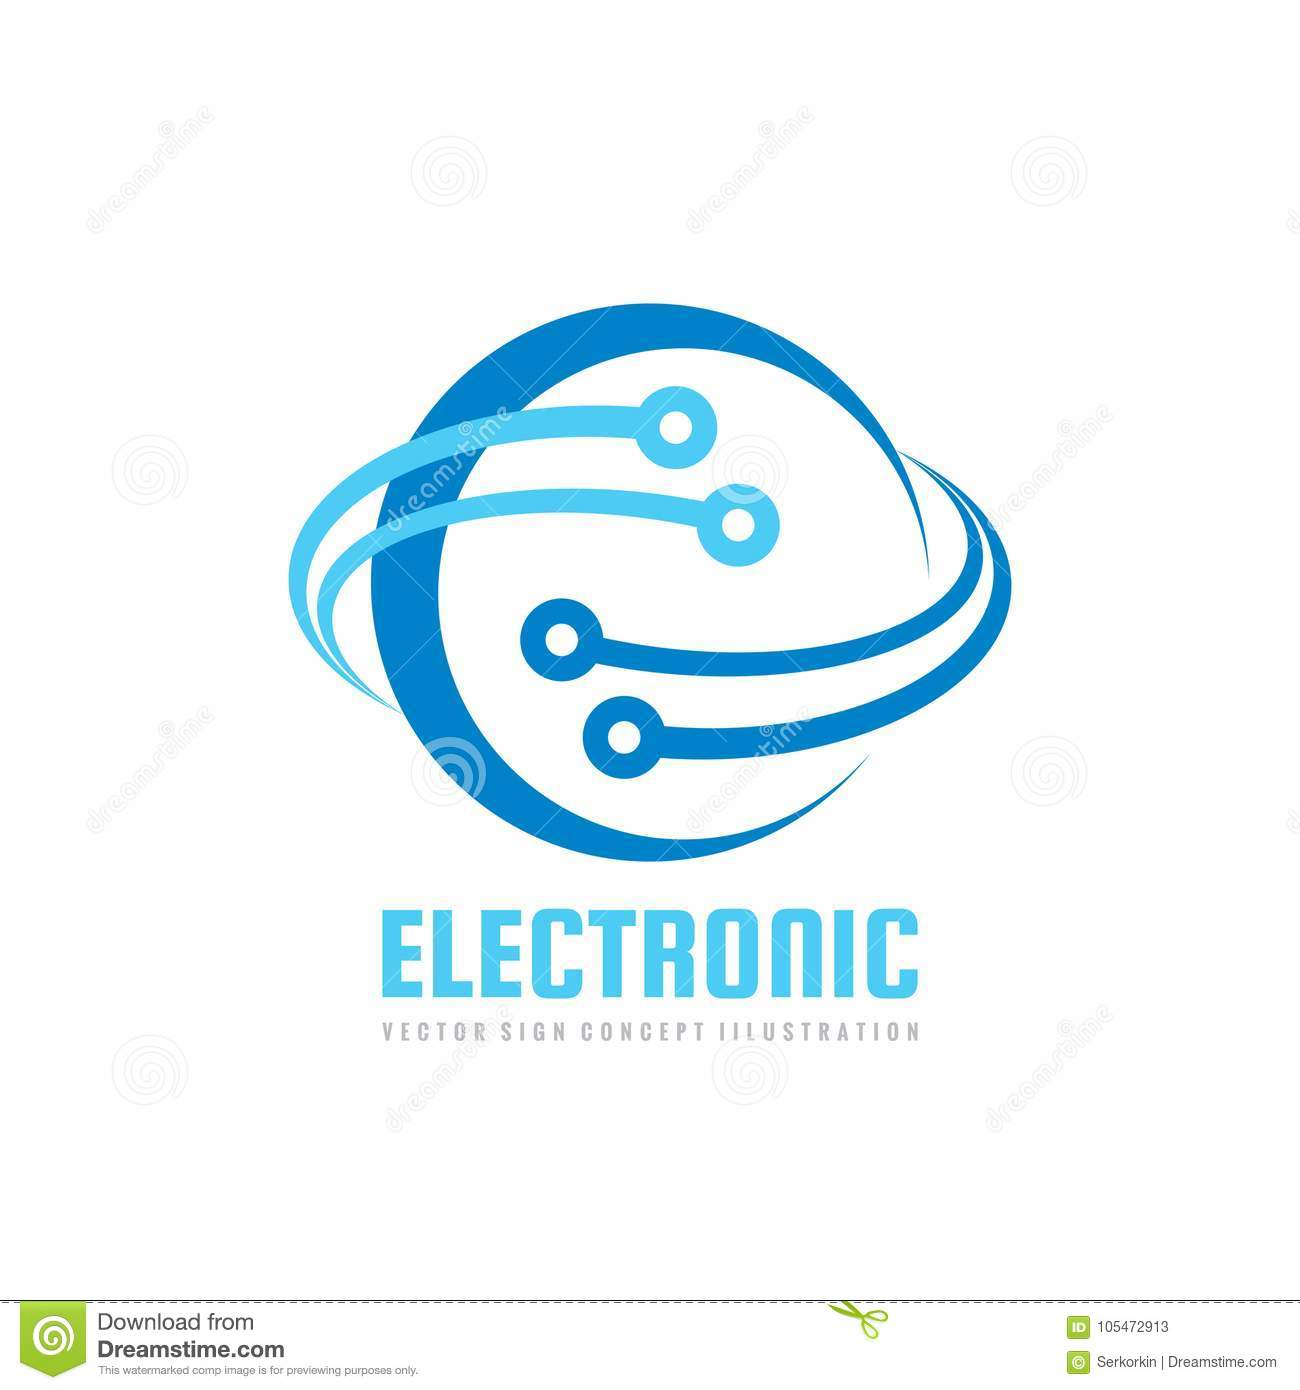 Electronic technology - vector logo template for corporate identity. Abstract global network, internet tech concept illustration.